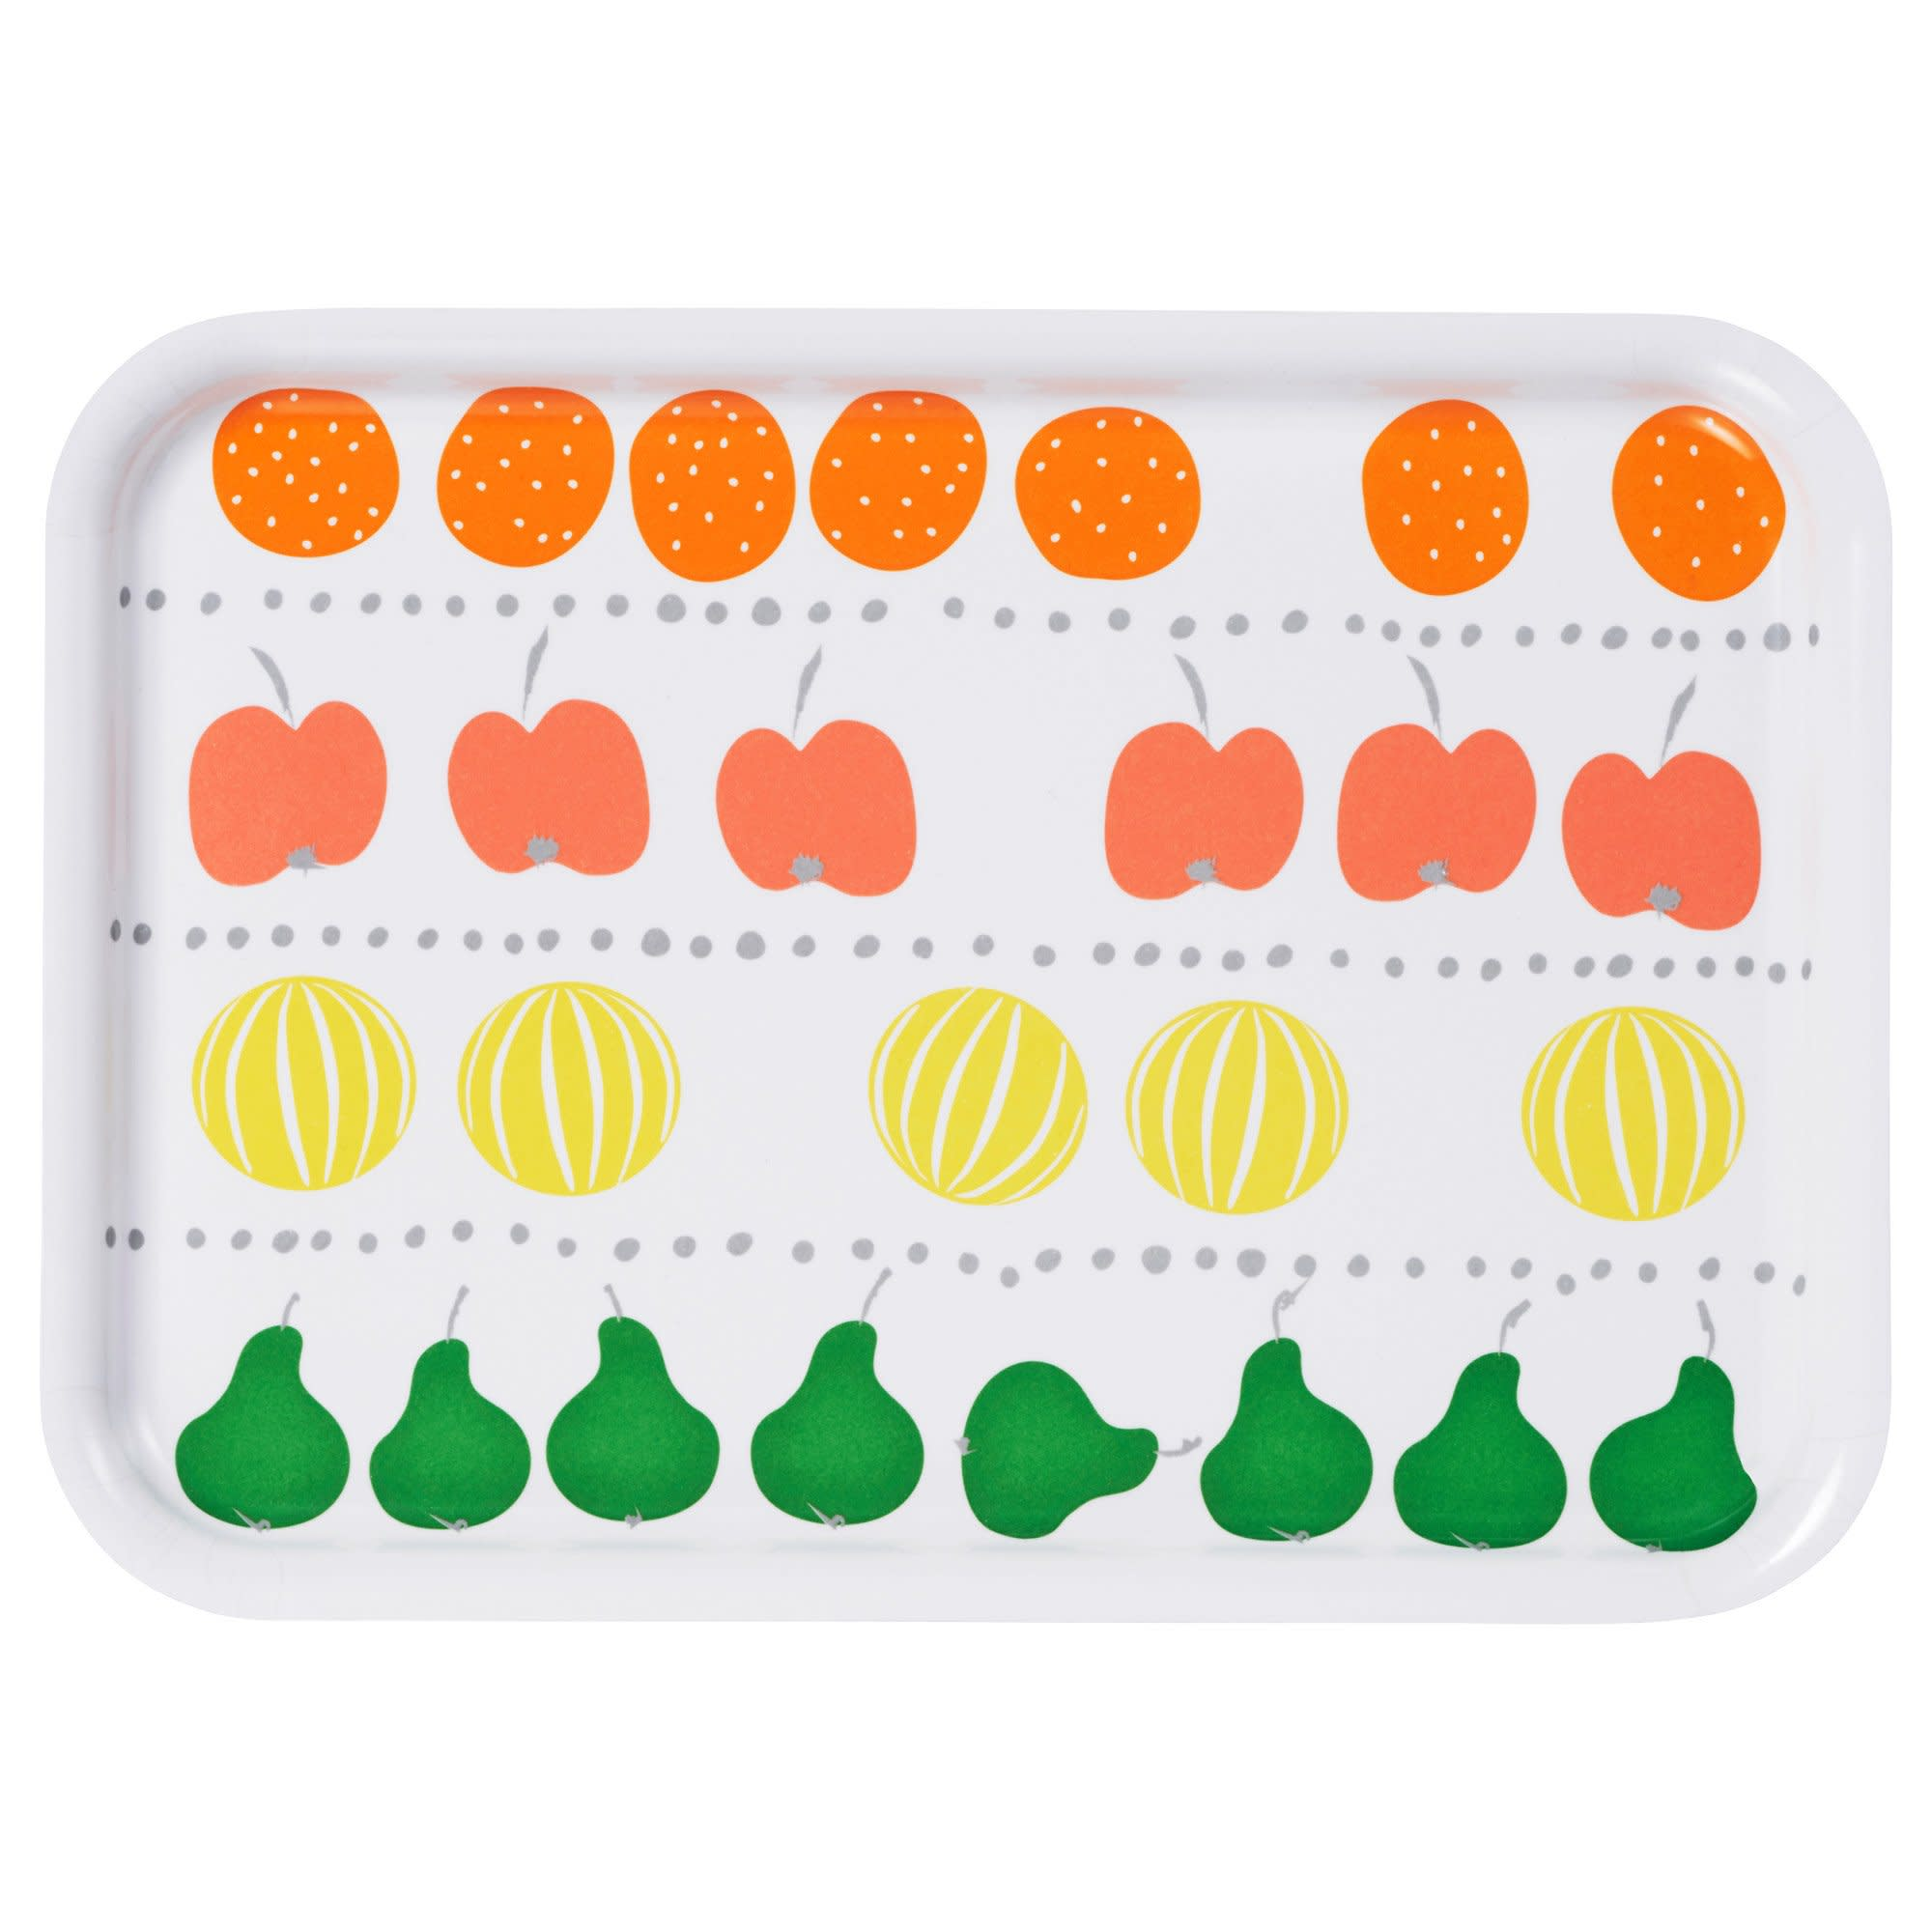 10 Petite Trays for Afternoon Tea: gallery image 1